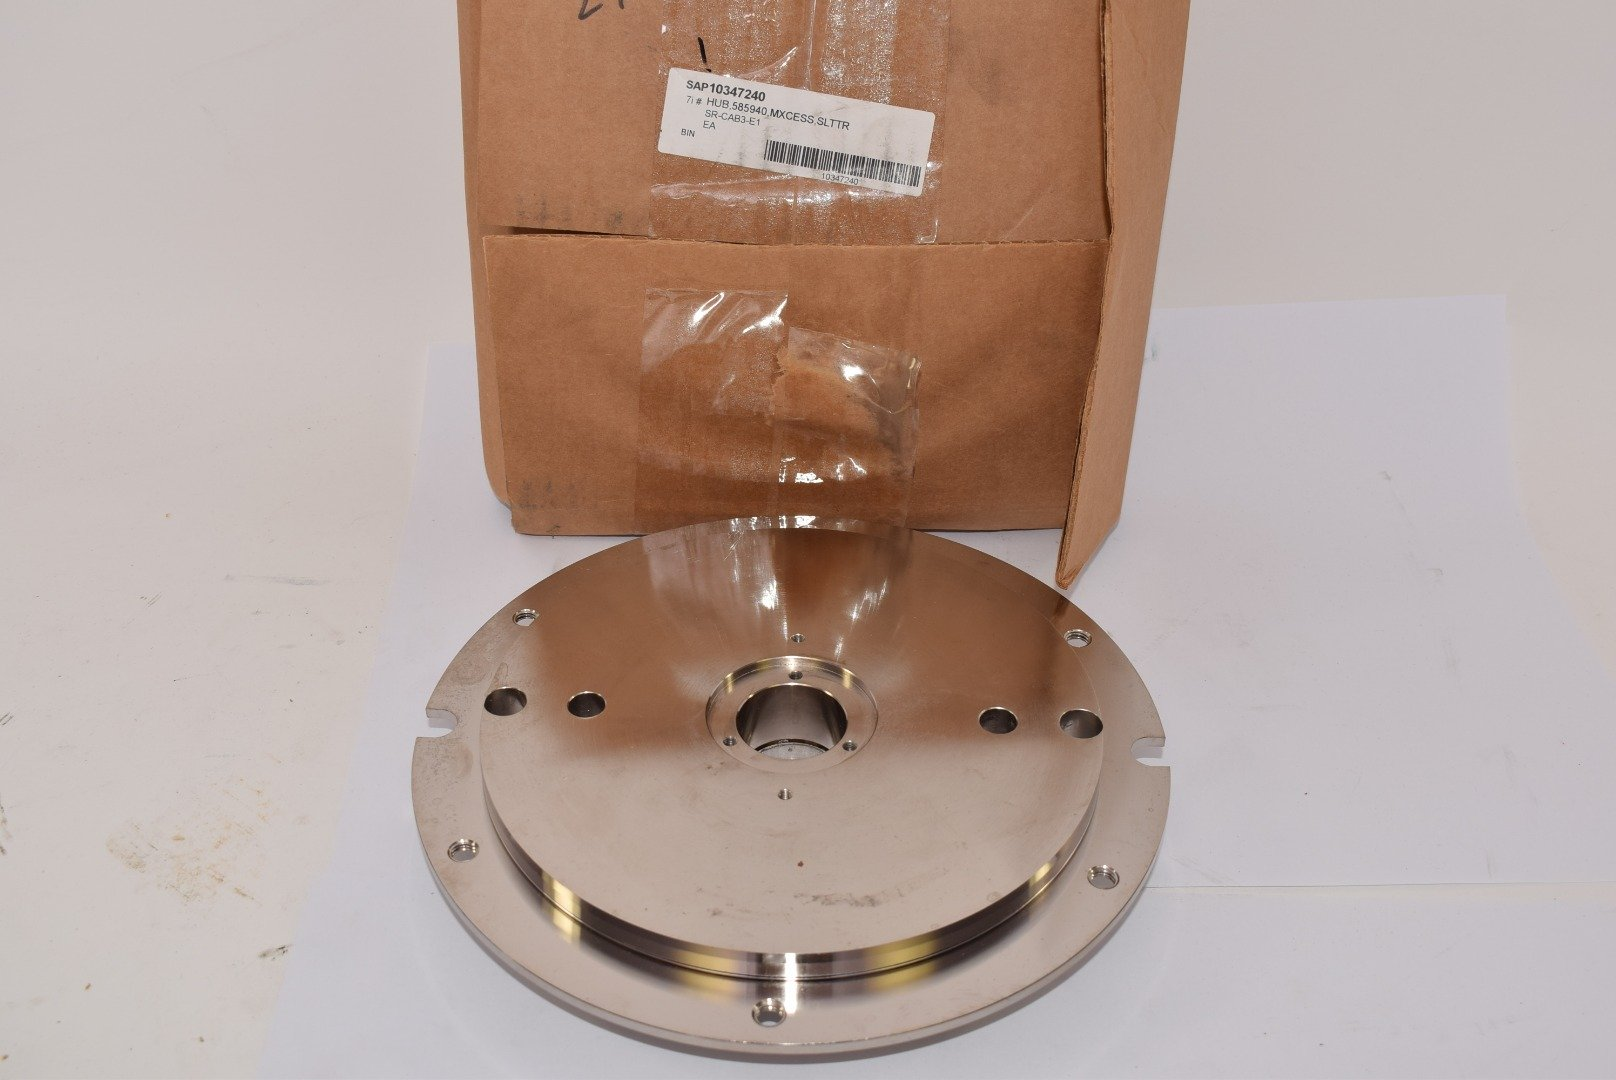 Tidland Maxcess 585940 Automatic Slitter Blade Cartridge Hub